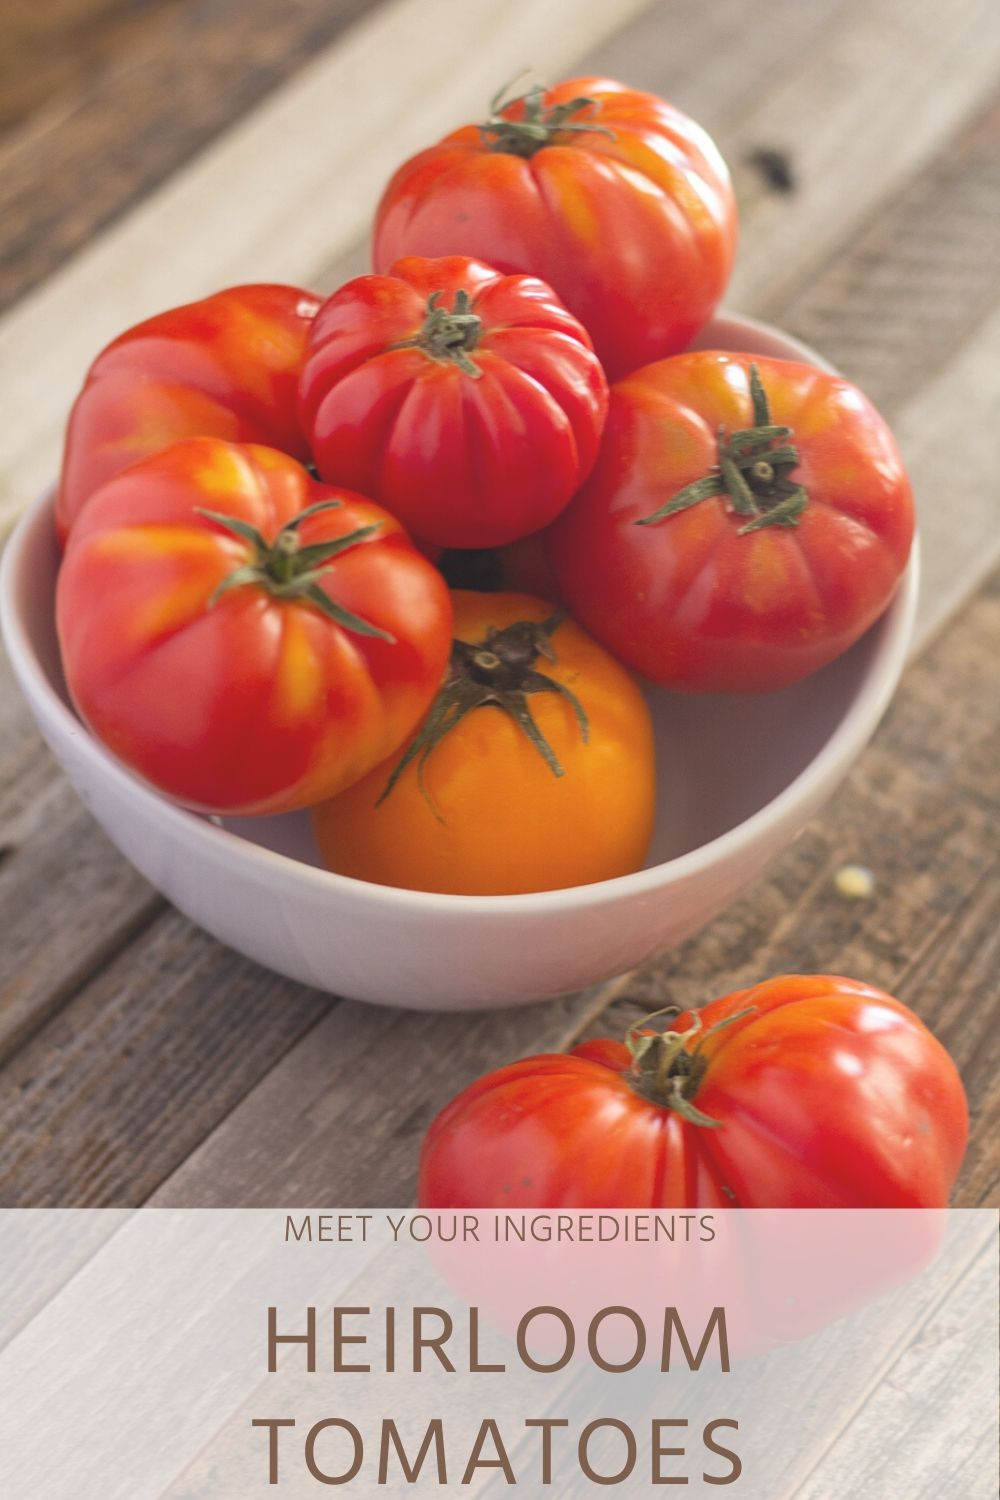 Dietitian Guide to Heirloom Tomatoes